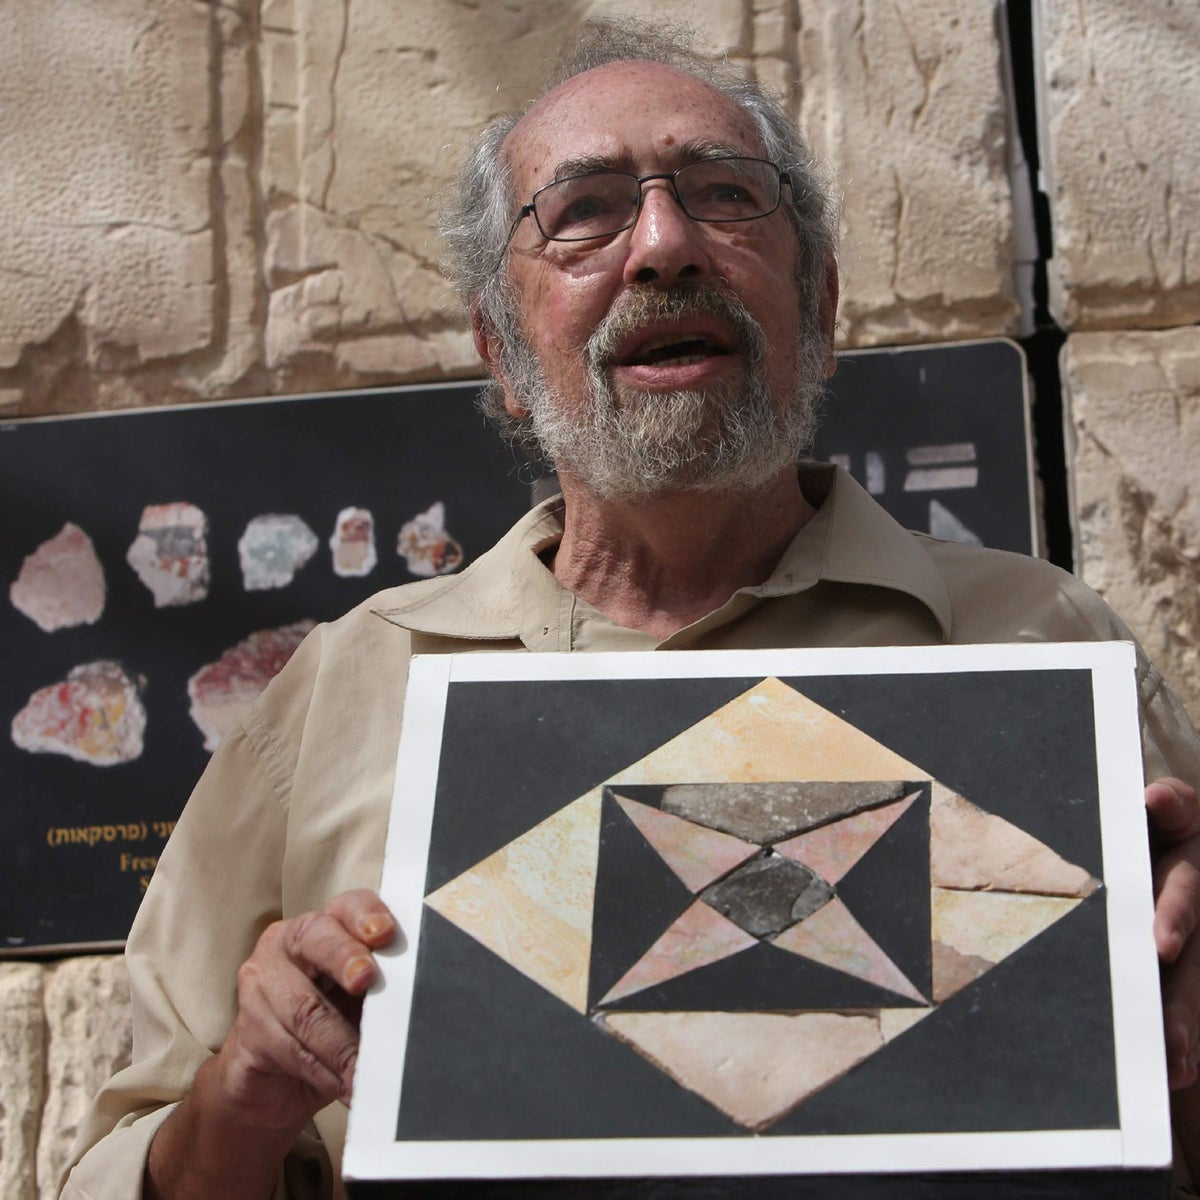 Dr. Gabriel Barkay from the City of David Foundation shows a restored tile during a press conference on September 6, 2016 in the Emek Tzurim National Park located near Mount Scopus in Israeli-annexed east Jerusalem.